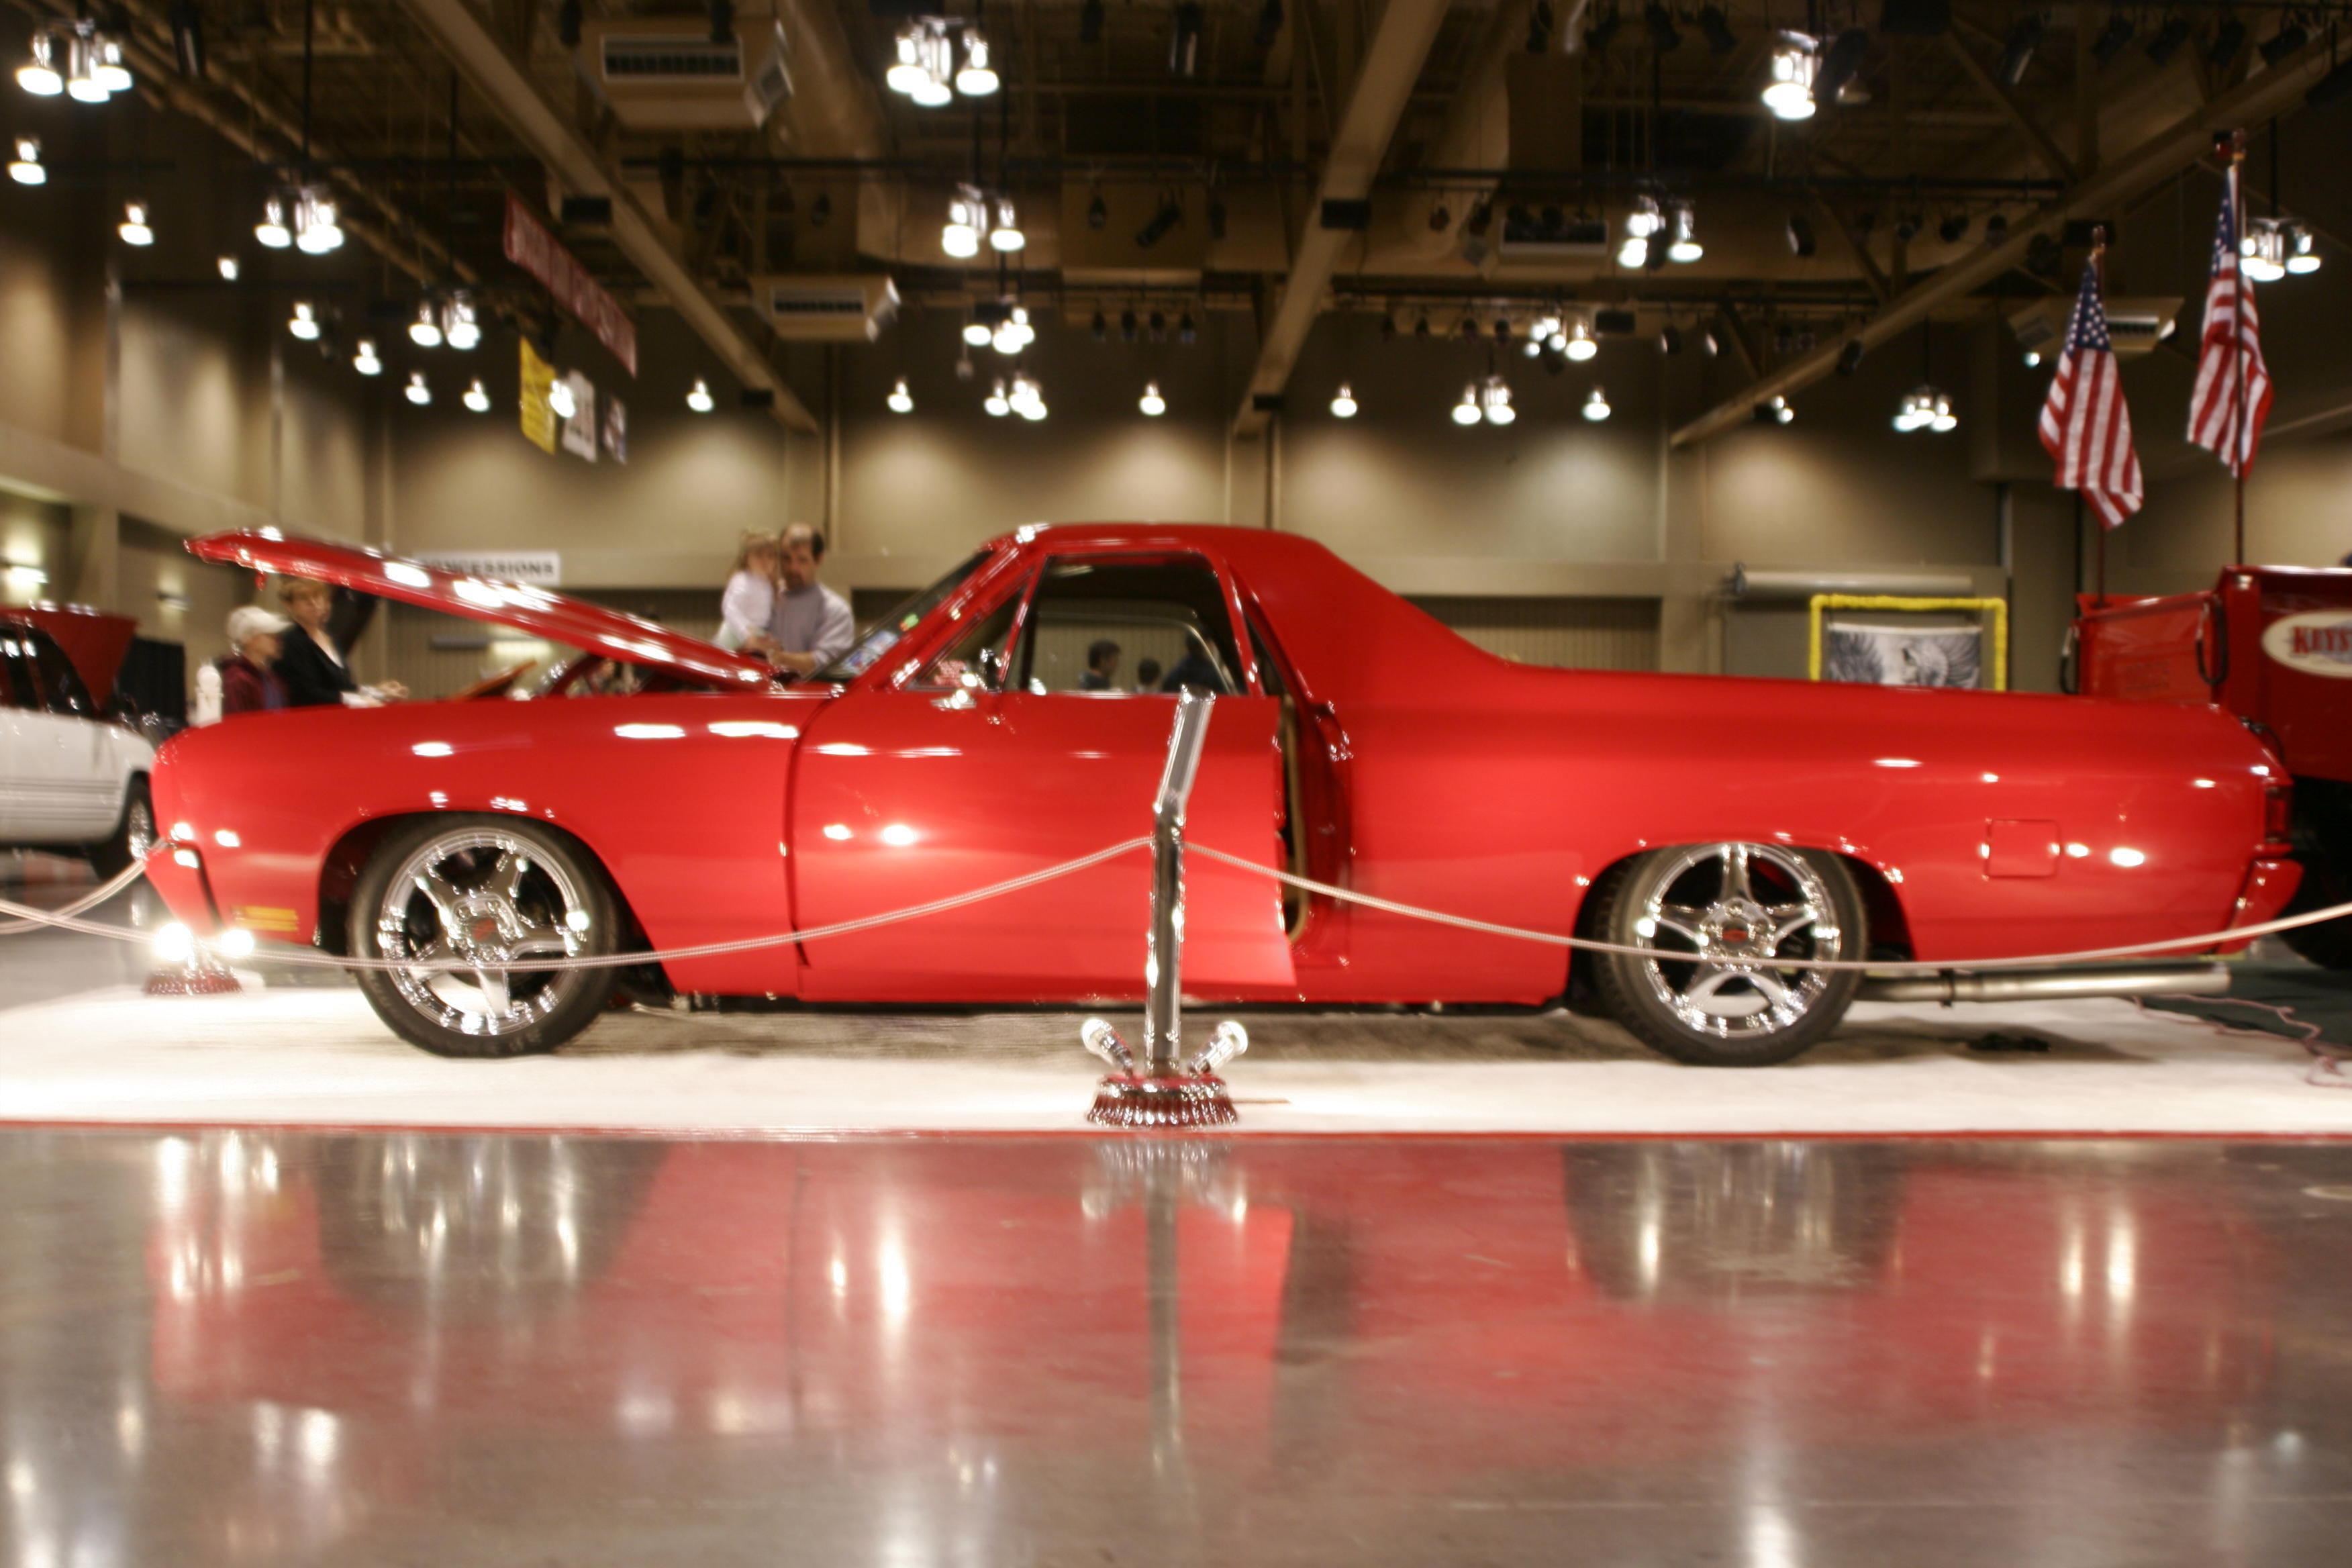 1970 El Camino Led Tail Lights Allredss 1970 Chevrolet El Camino Specs Photos Modification Info